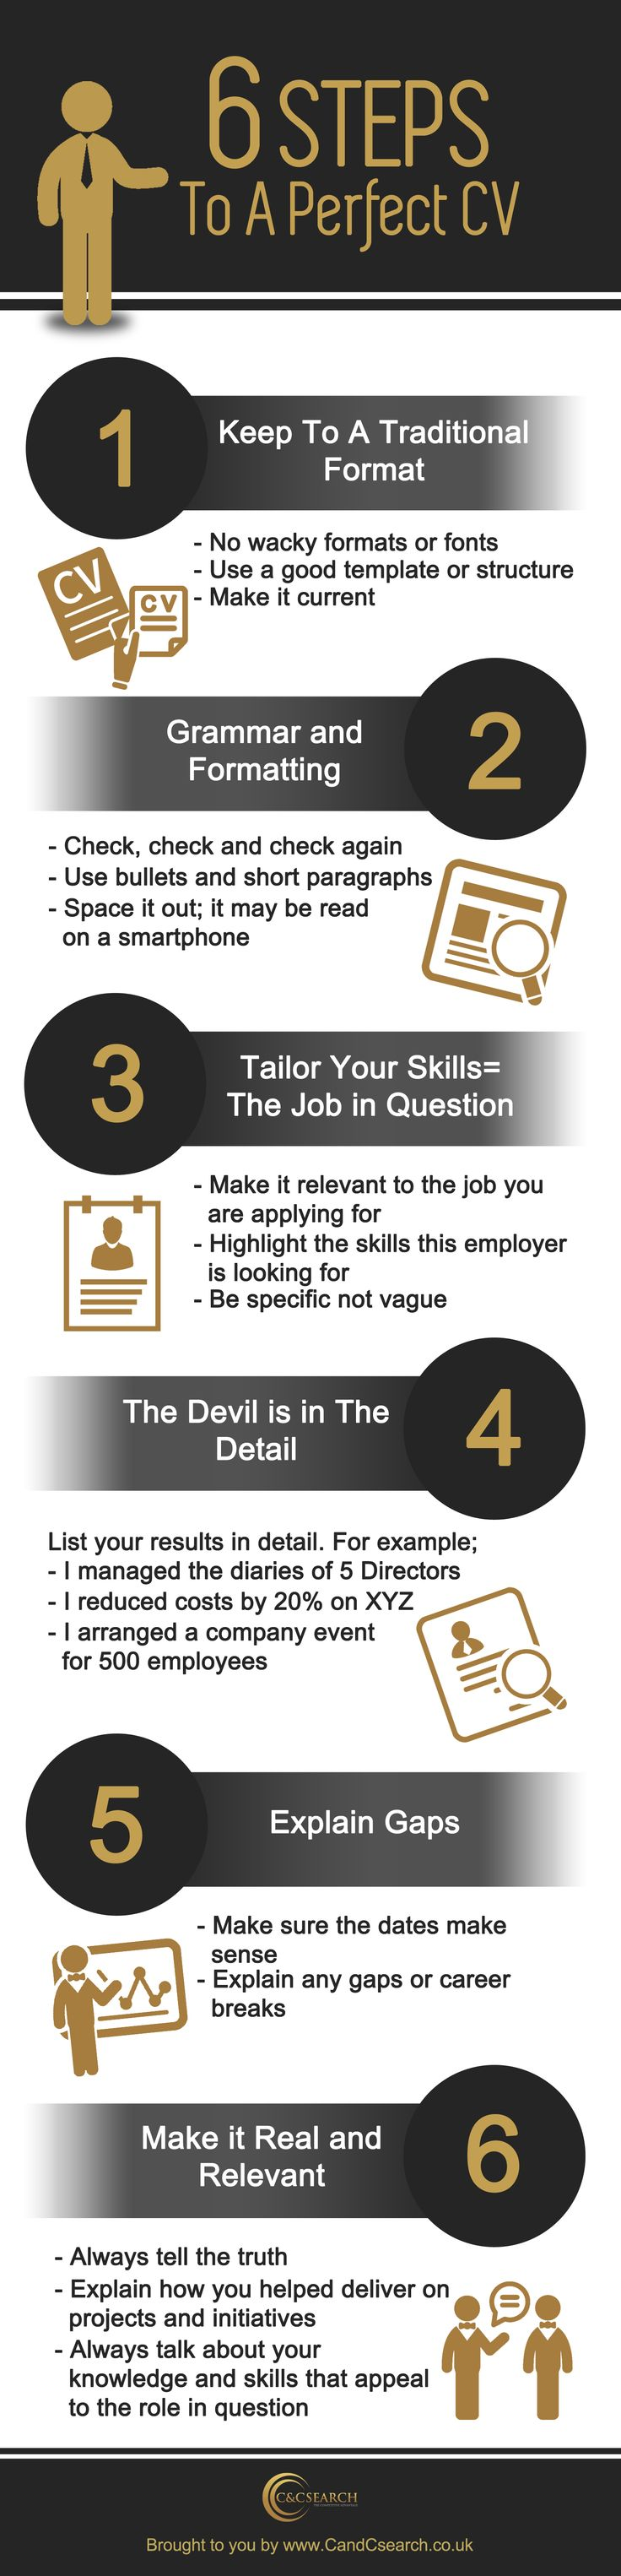 bartender job description resume%0A This is an infographic guide to building a perfect CV for purposes of  getting a job